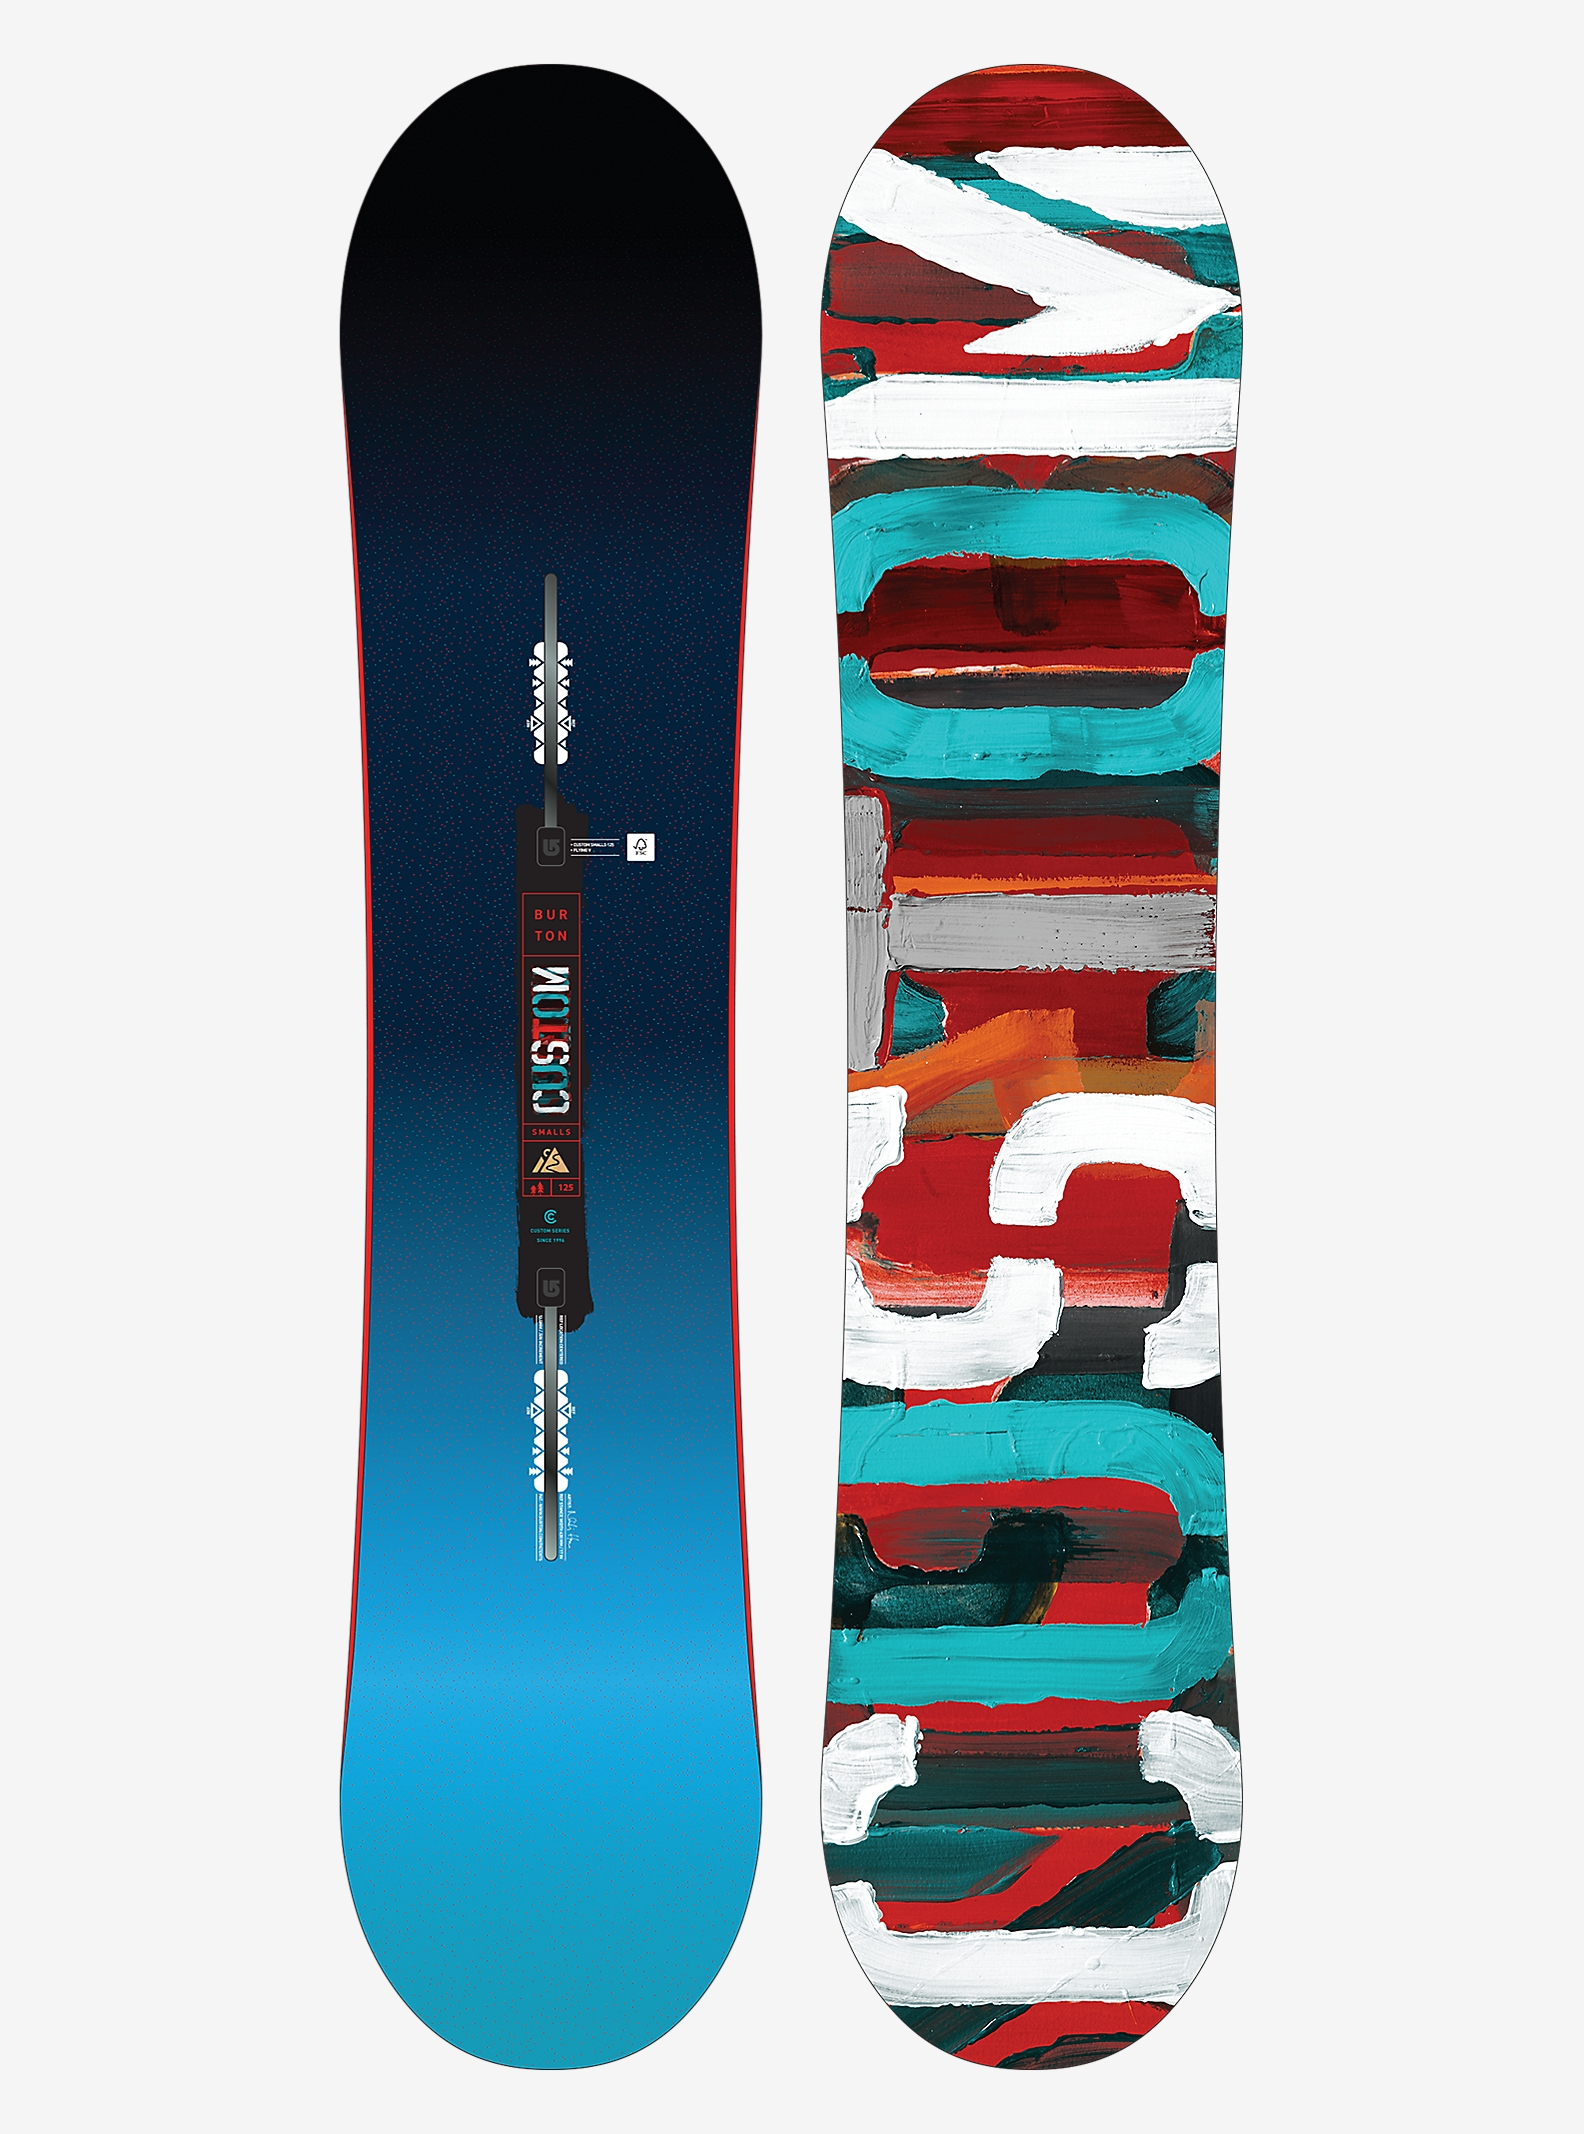 Burton Custom Smalls Snowboard shown in 125